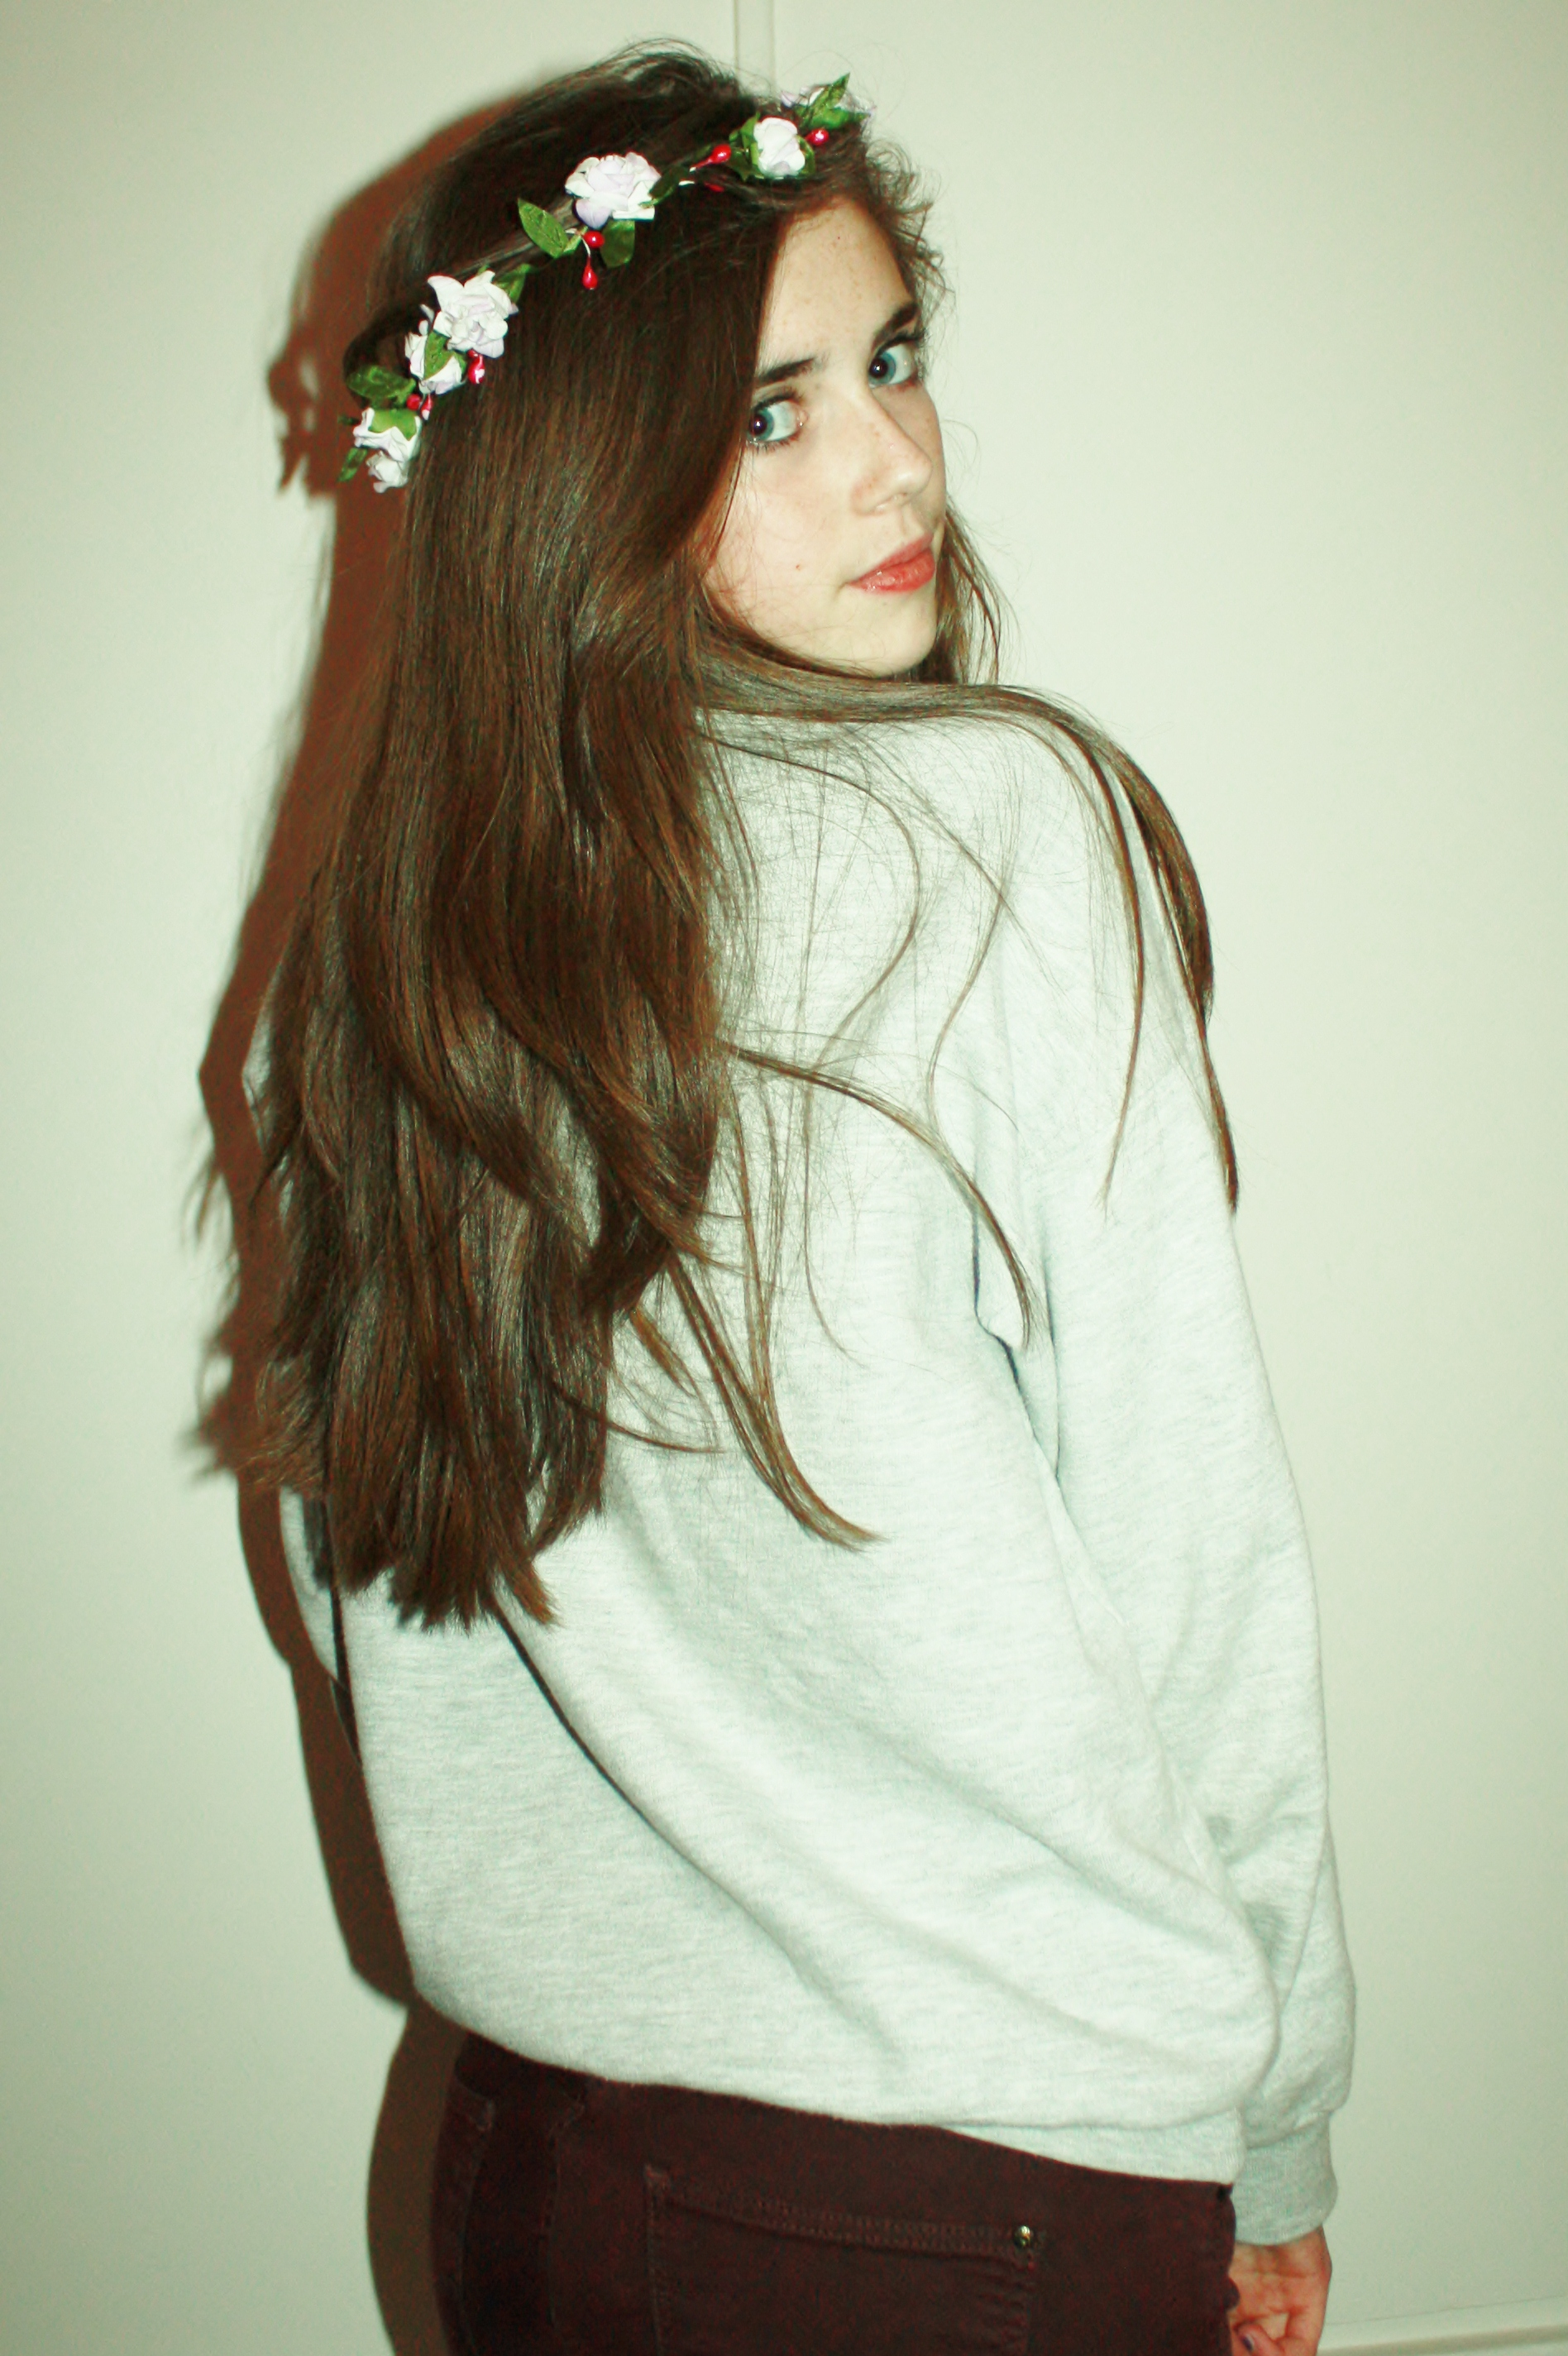 Girl with flower crown tumblr comousar girl with flower crown tumblr tumblr girl fl izmirmasajfo